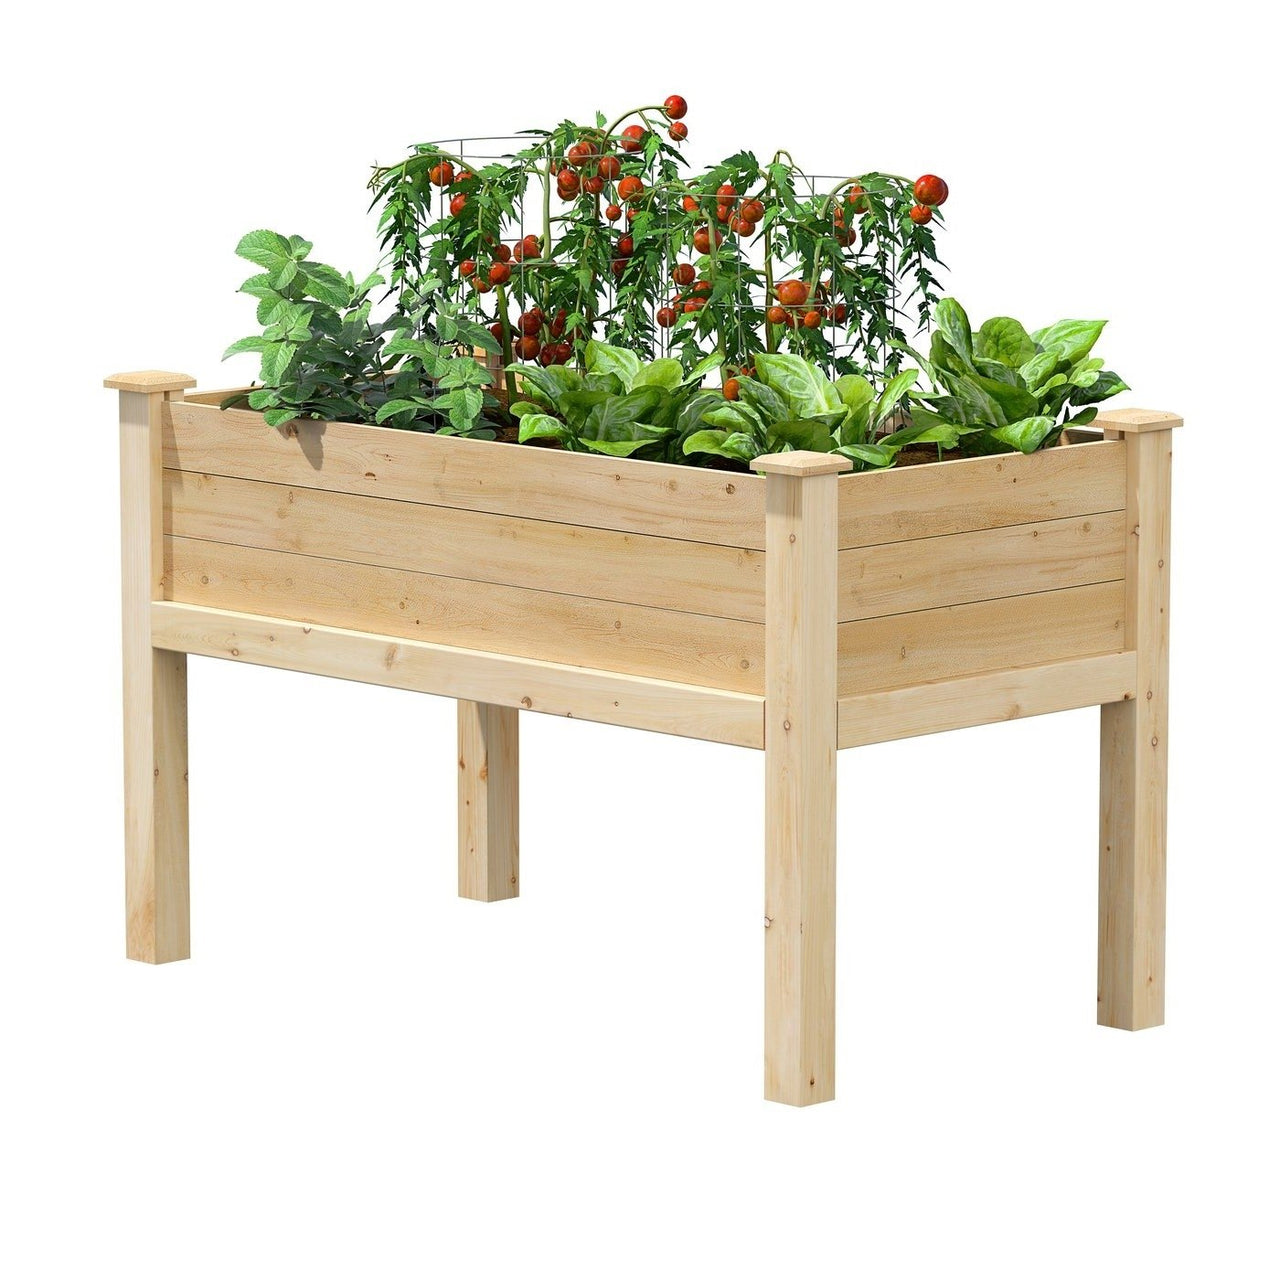 Farmhouse 24-in x 48-in x 31-in Cedar Elevated Victory Garden Bed - Made in USA